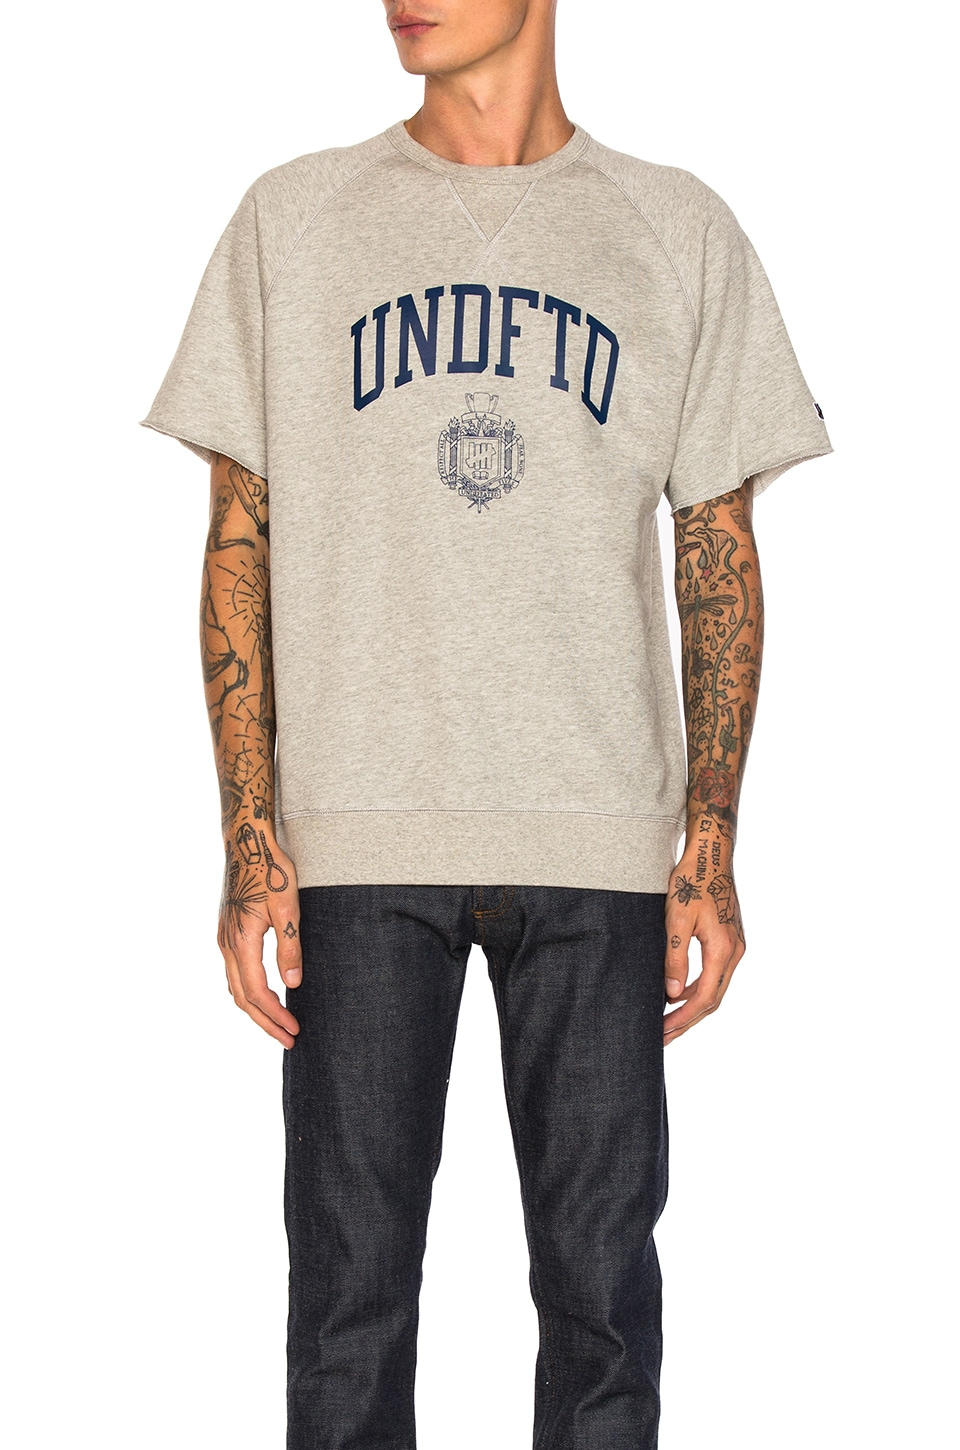 College Crewneck by Undefeated